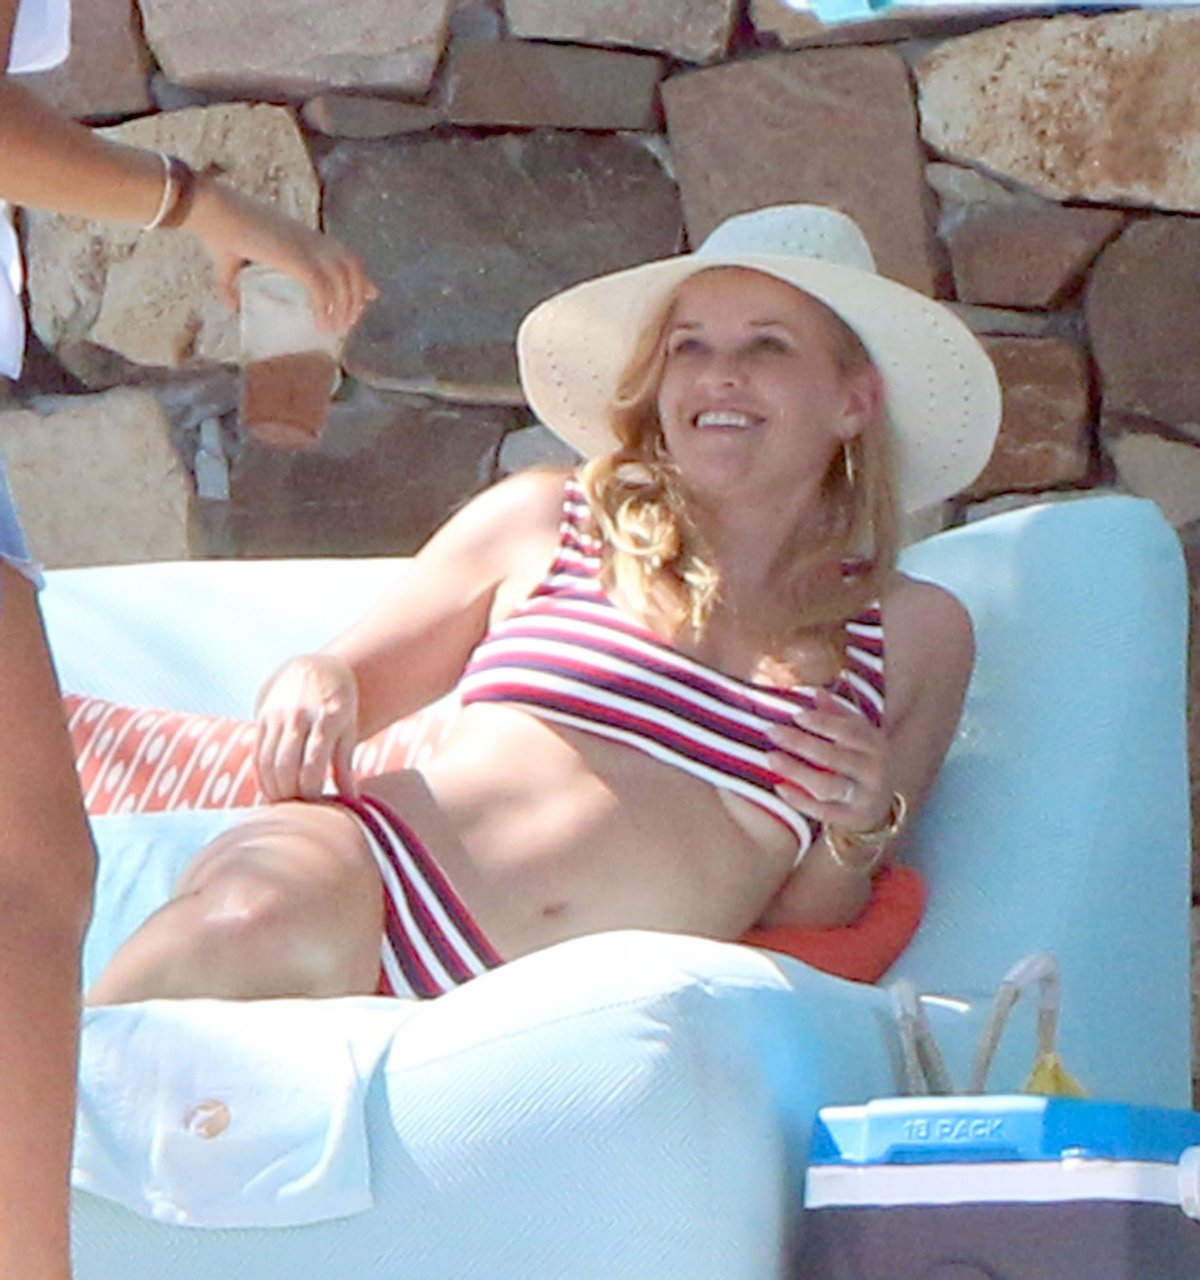 Reese witherspoon photos nude